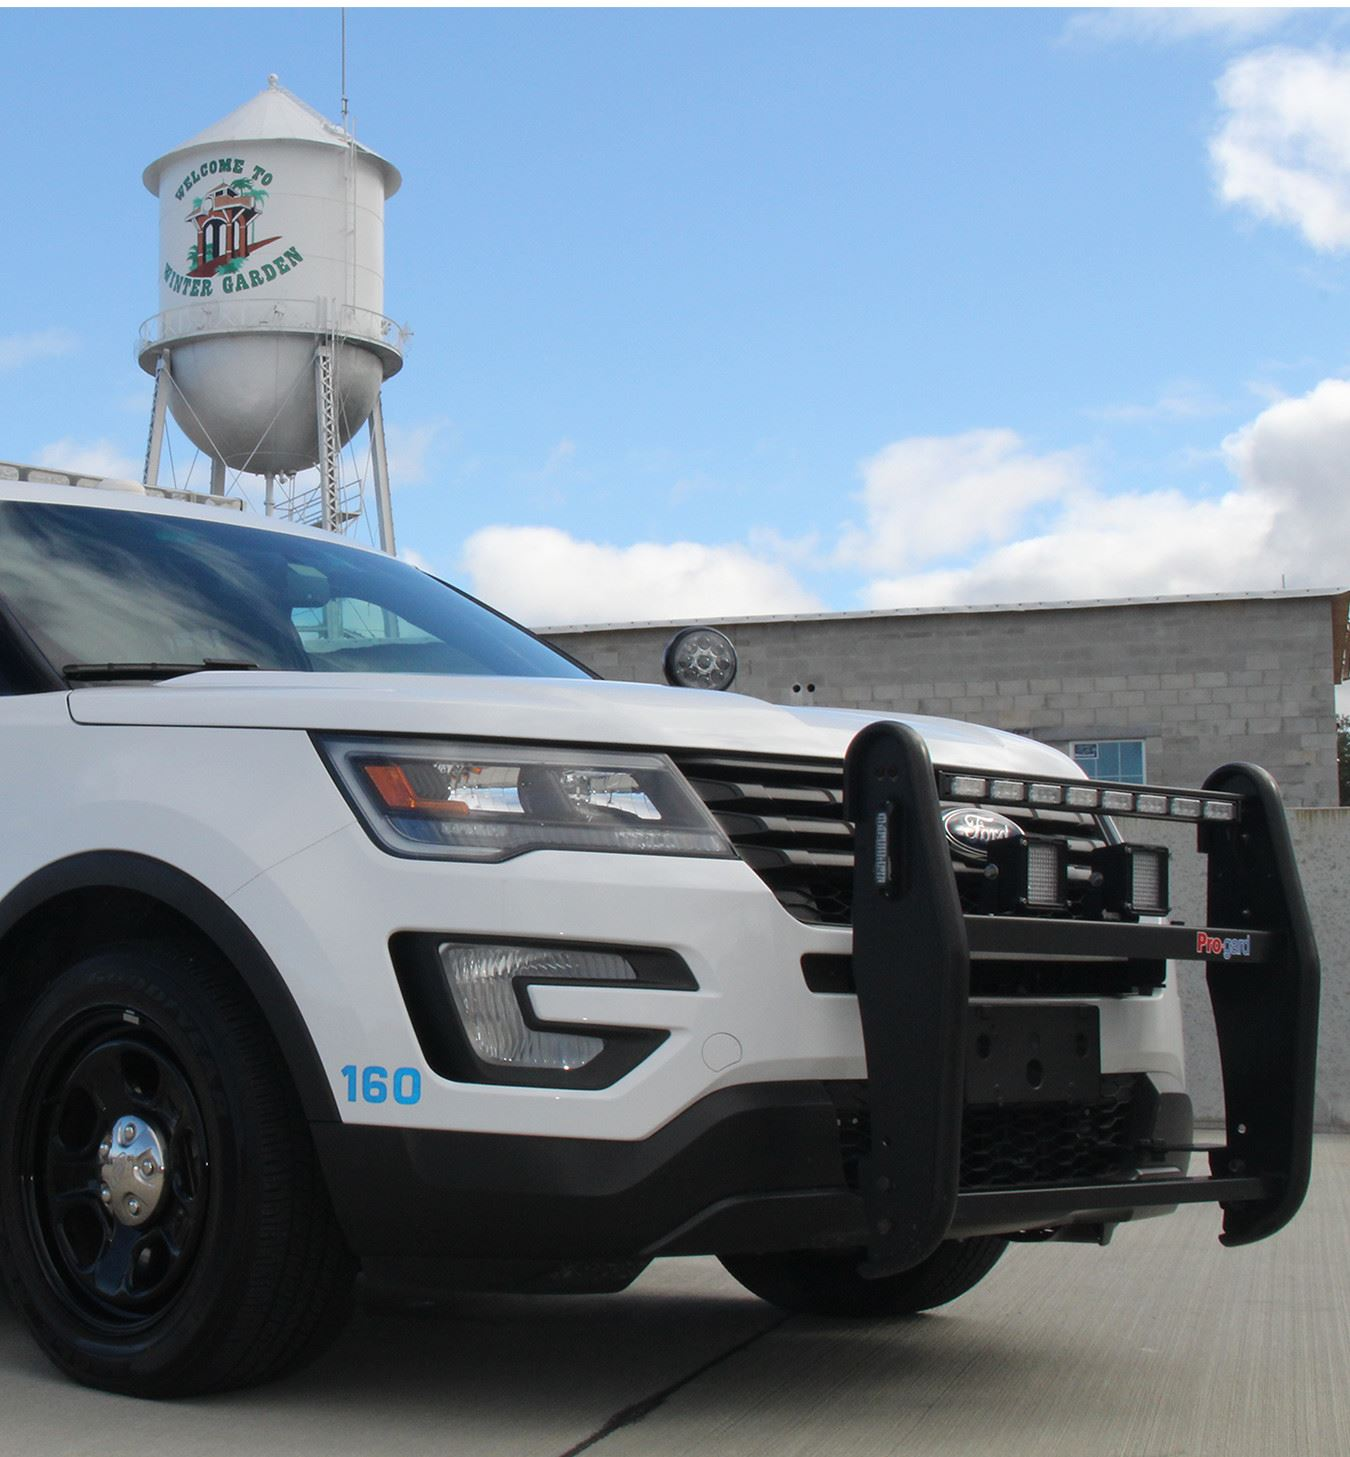 Police Vehicle Parked in Front of Water Tower